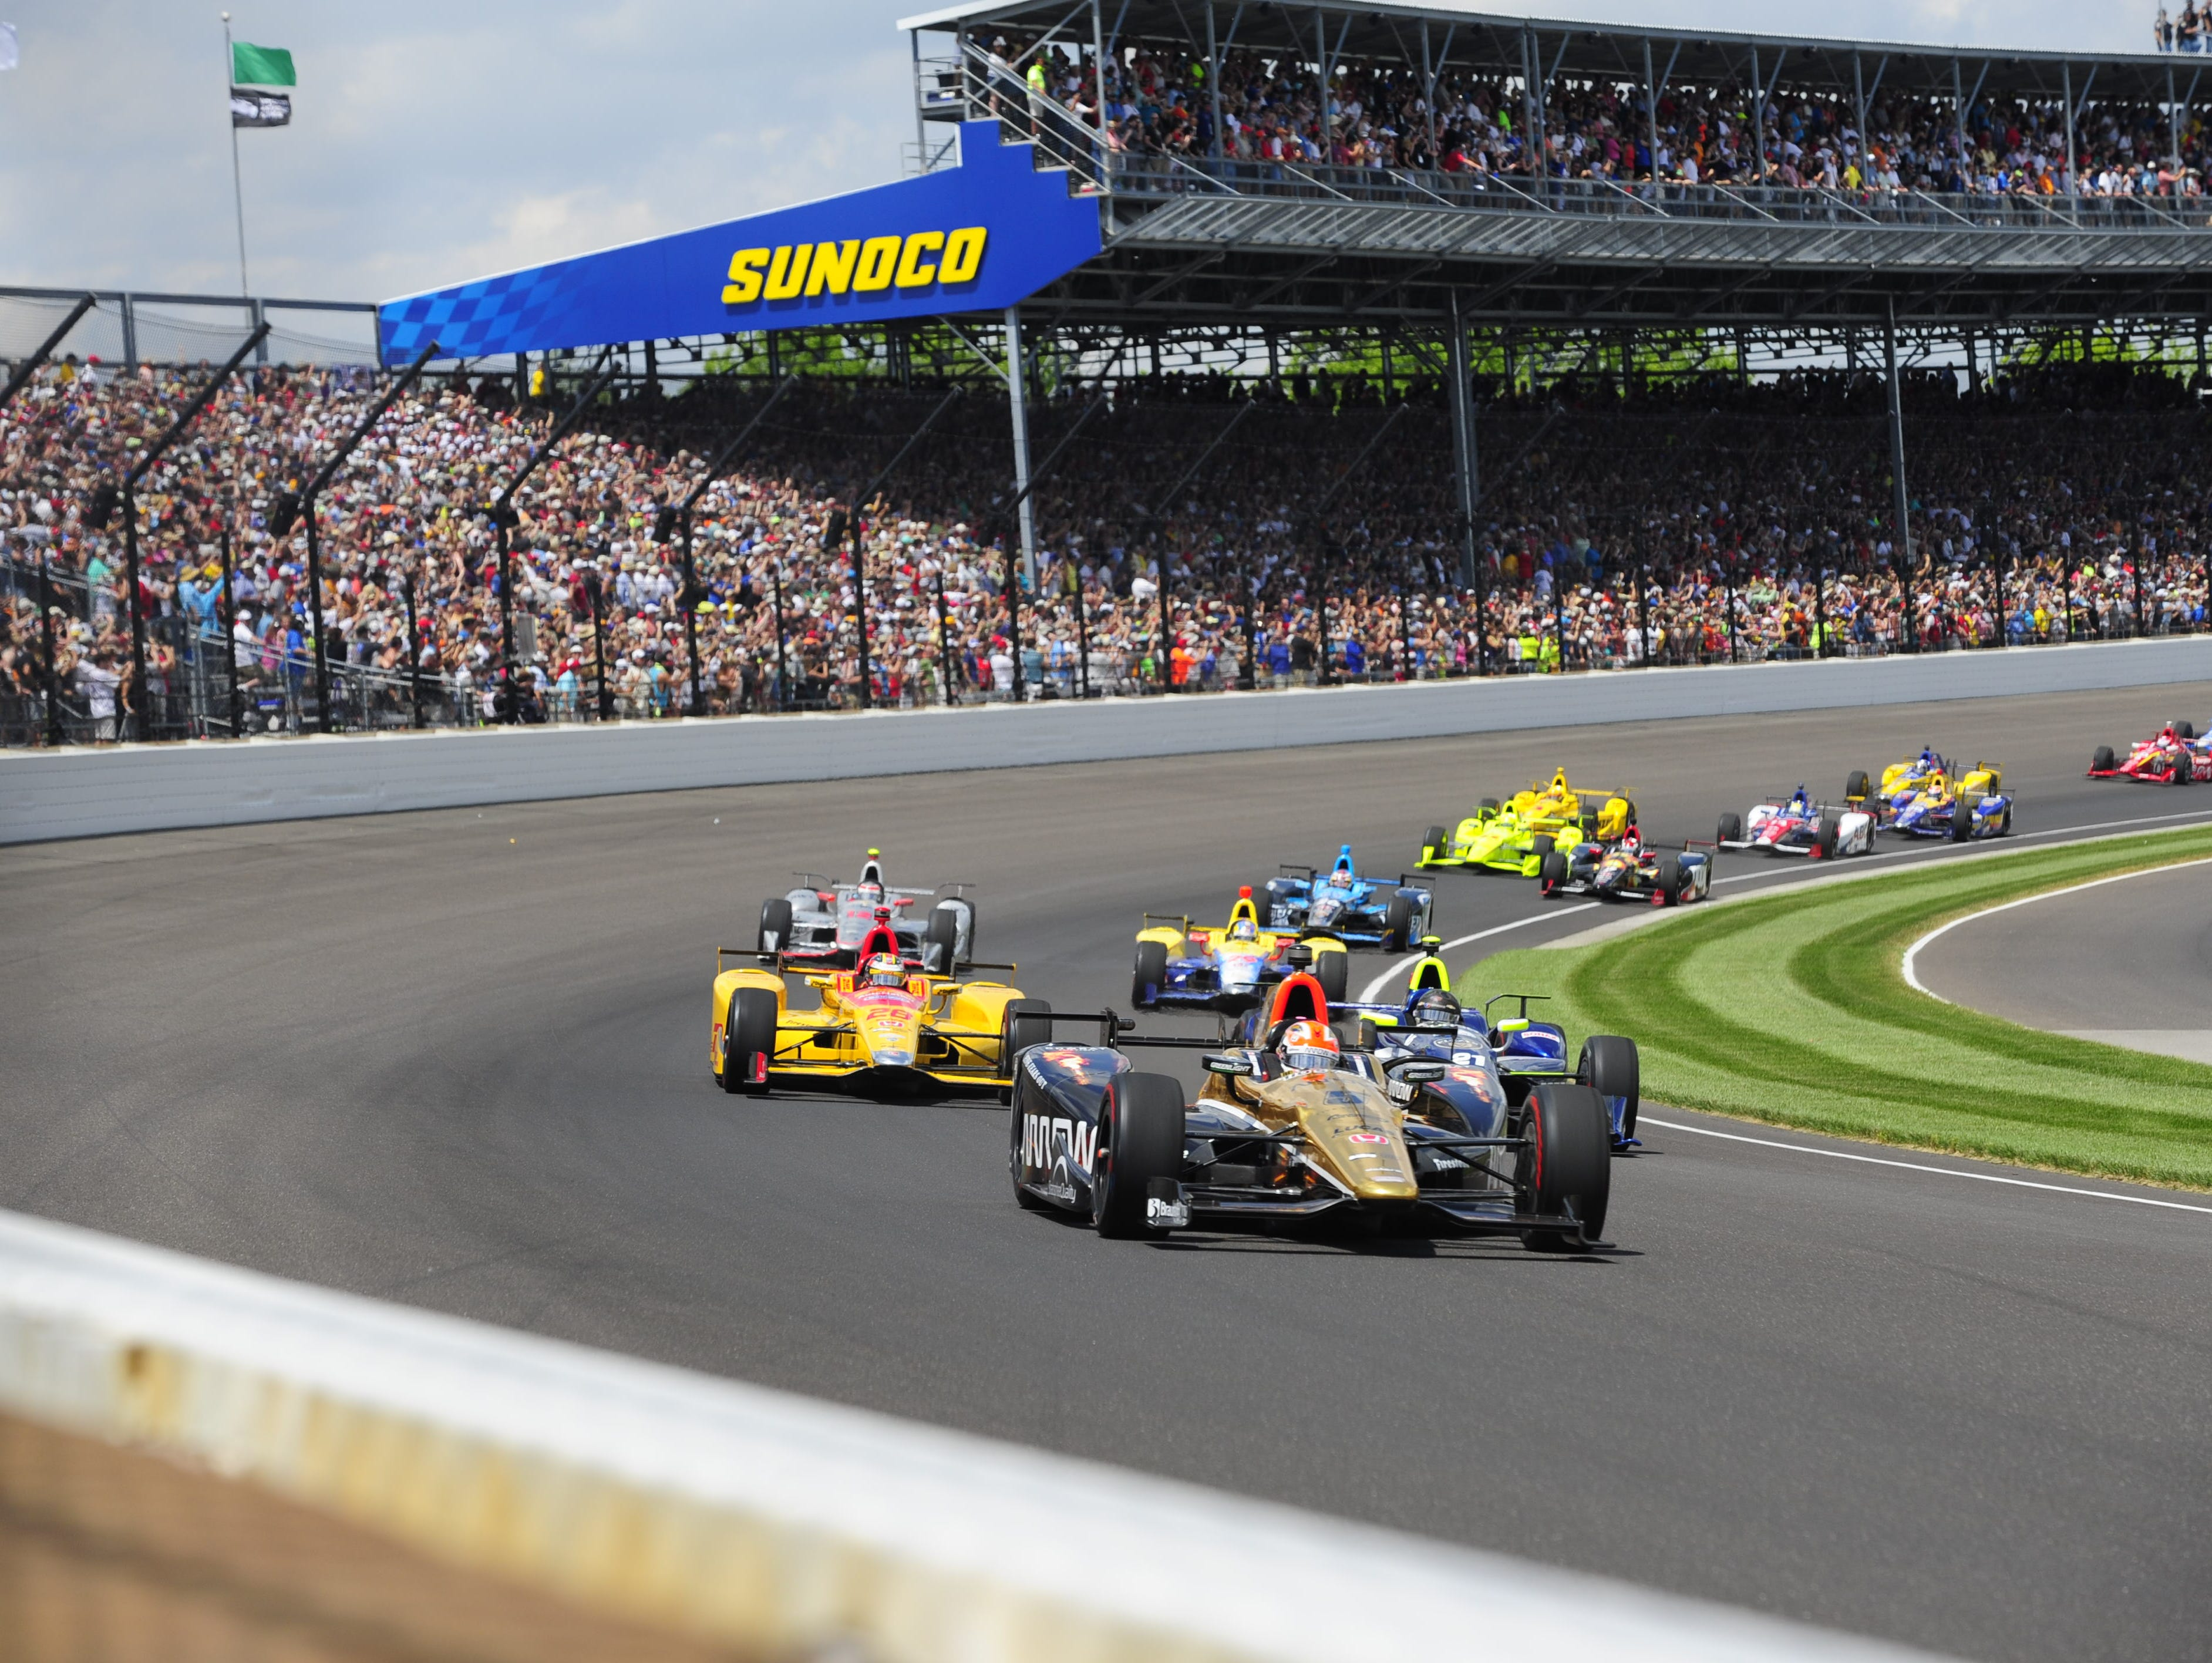 240,000 seats at Indianapolis Motor Speedway. What's the ...